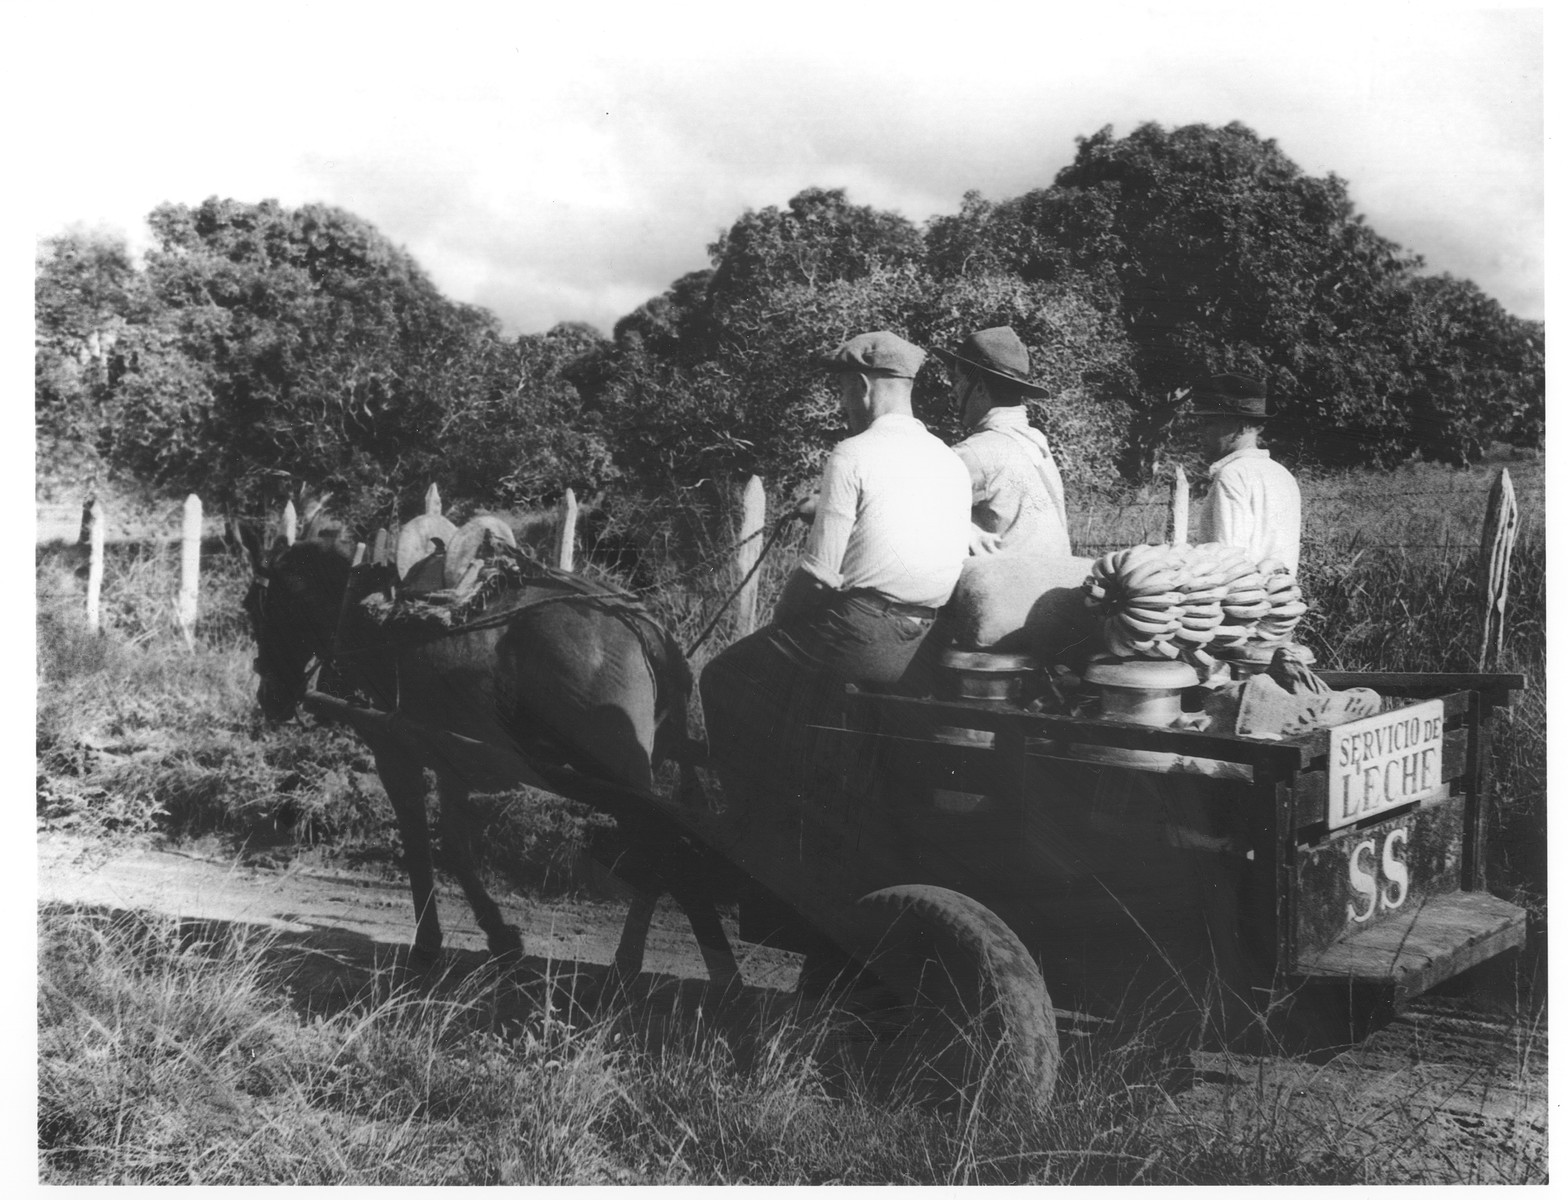 Jewish refugees living in the Sosua refugee colony deliver milk and bananas in a horse-drawn wagon.  Seated in the center is Freddy Adler.